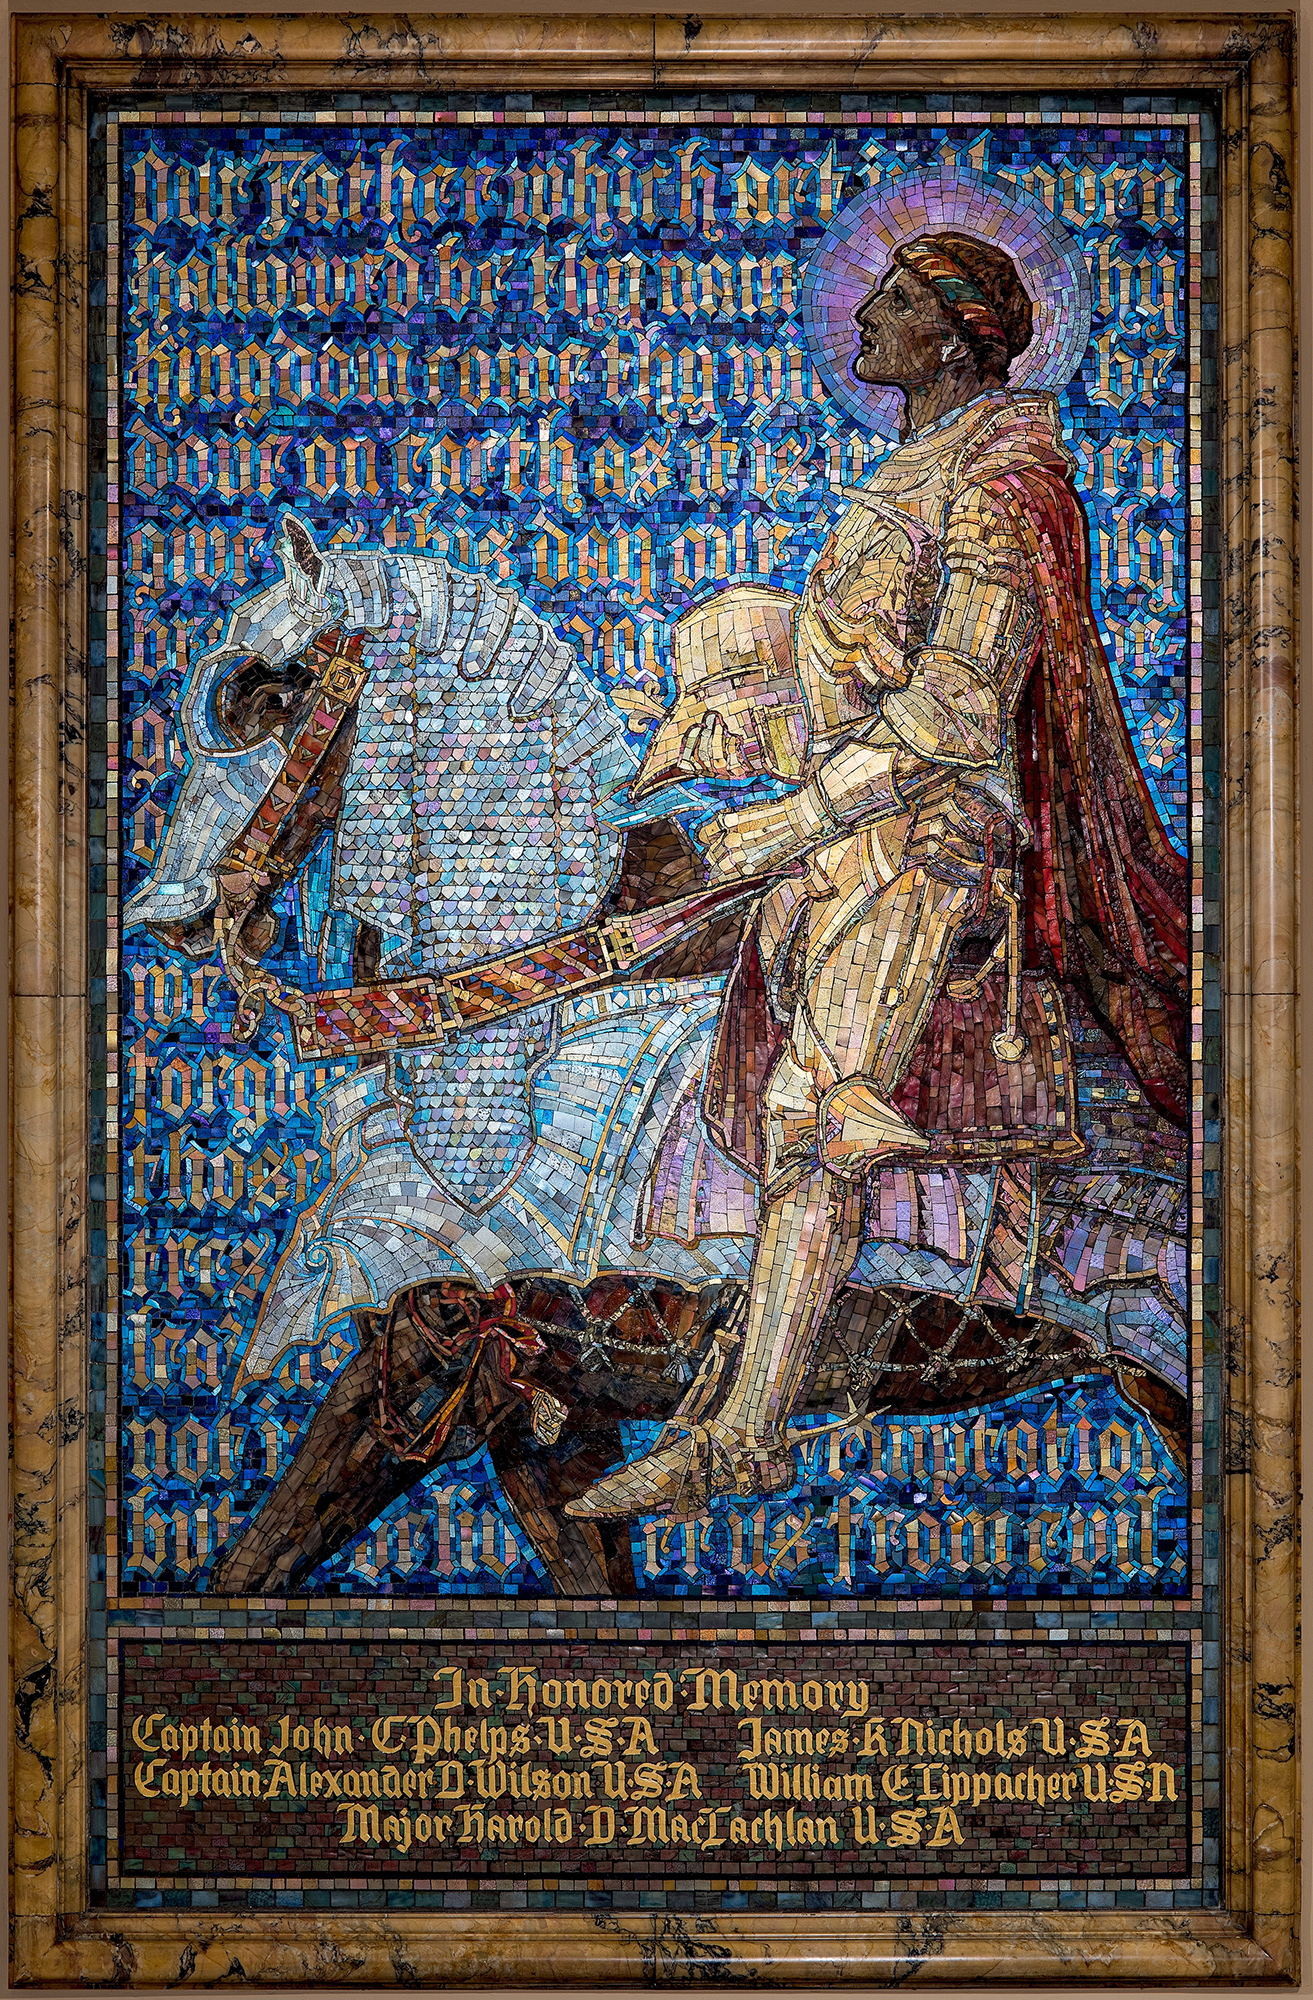 Panel, The Prayer of the Christian Soldier, 1919.